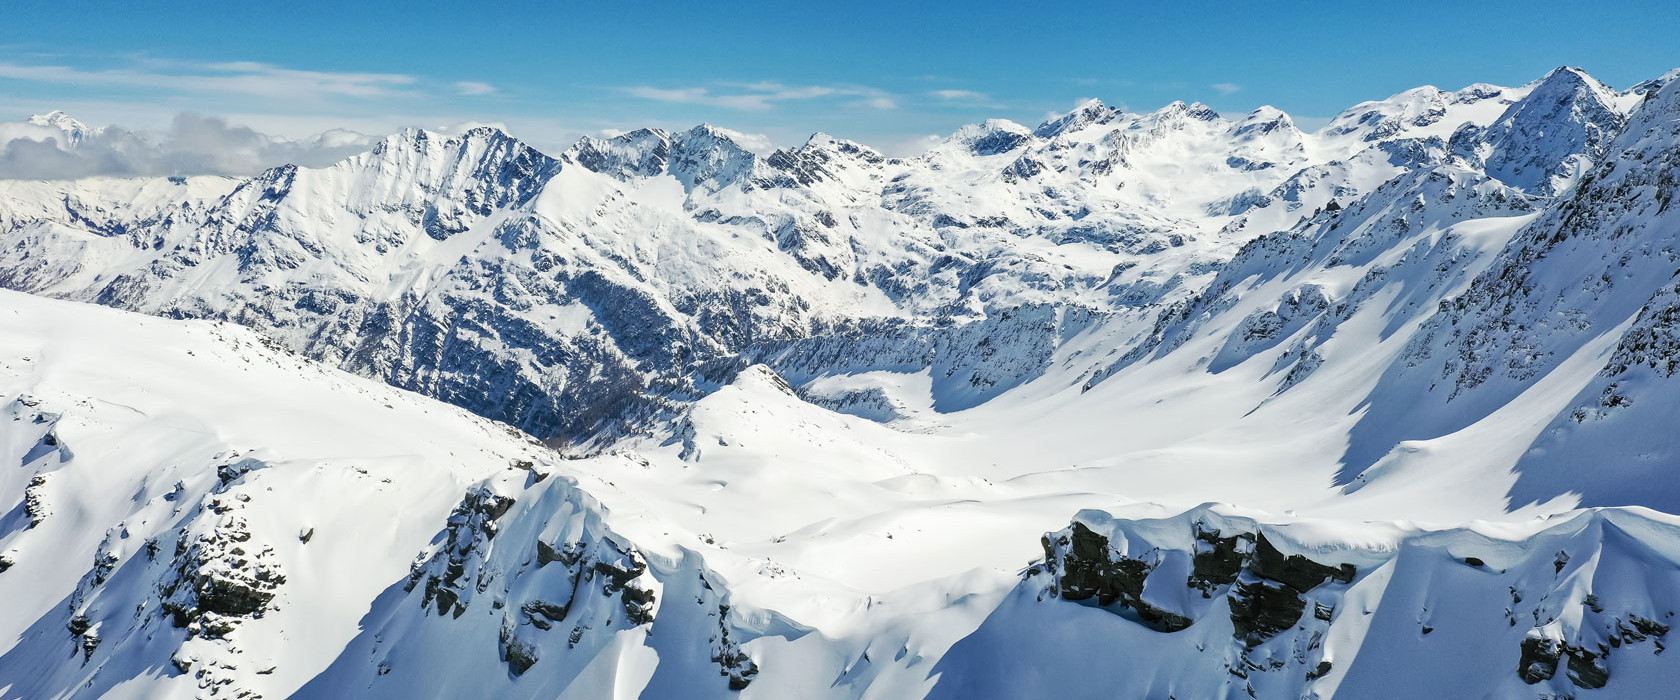 French Ski Resorts and Covid-19